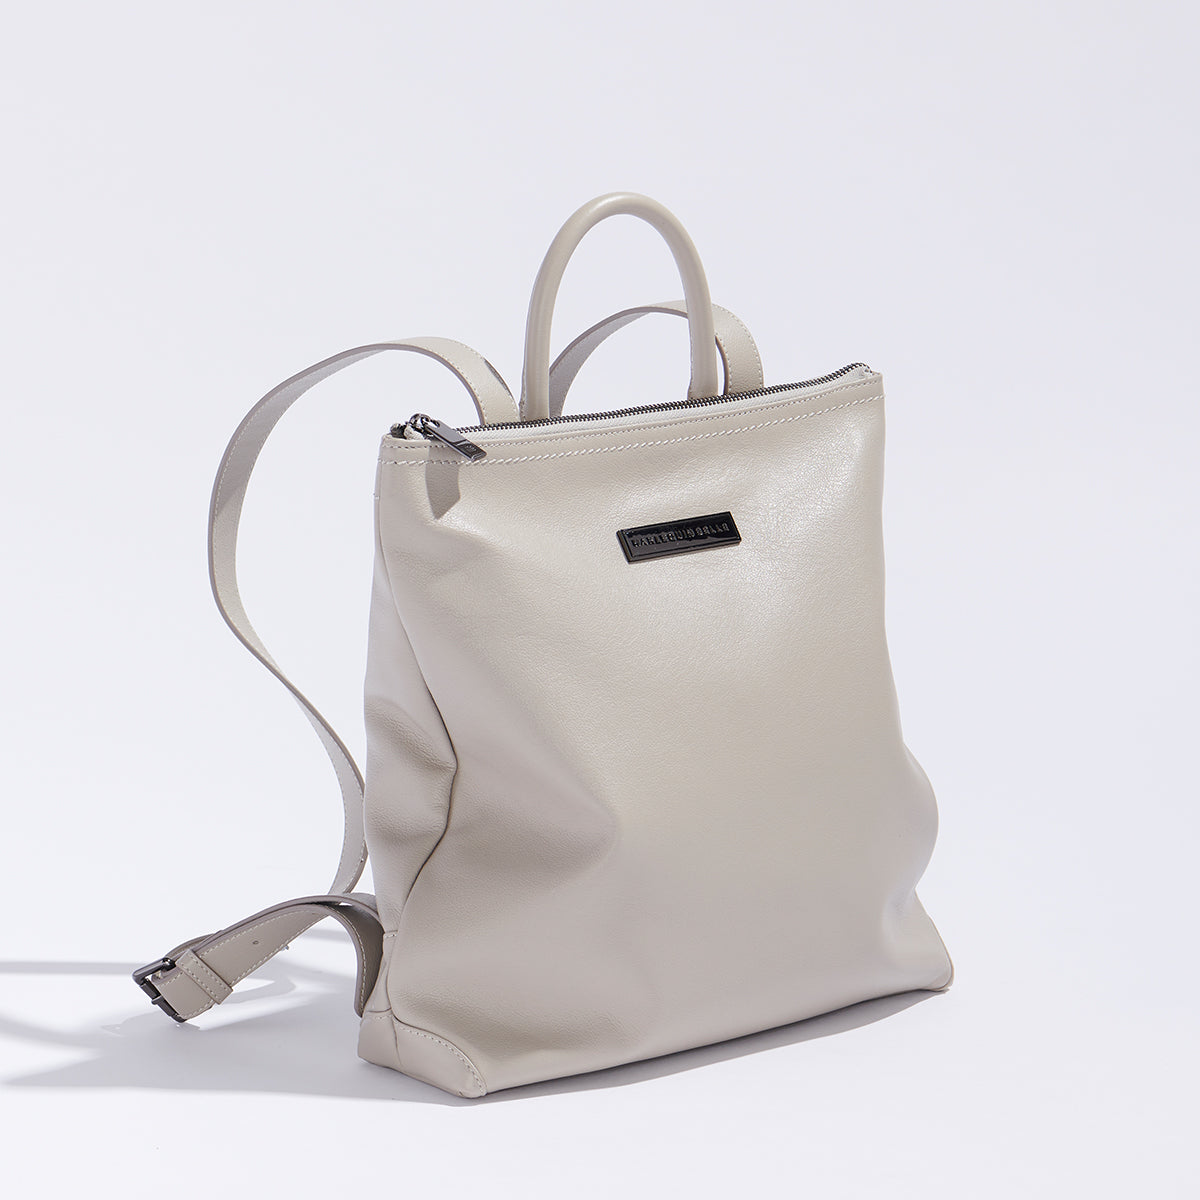 The Collective Backpack - Grey - Ex PR Sample